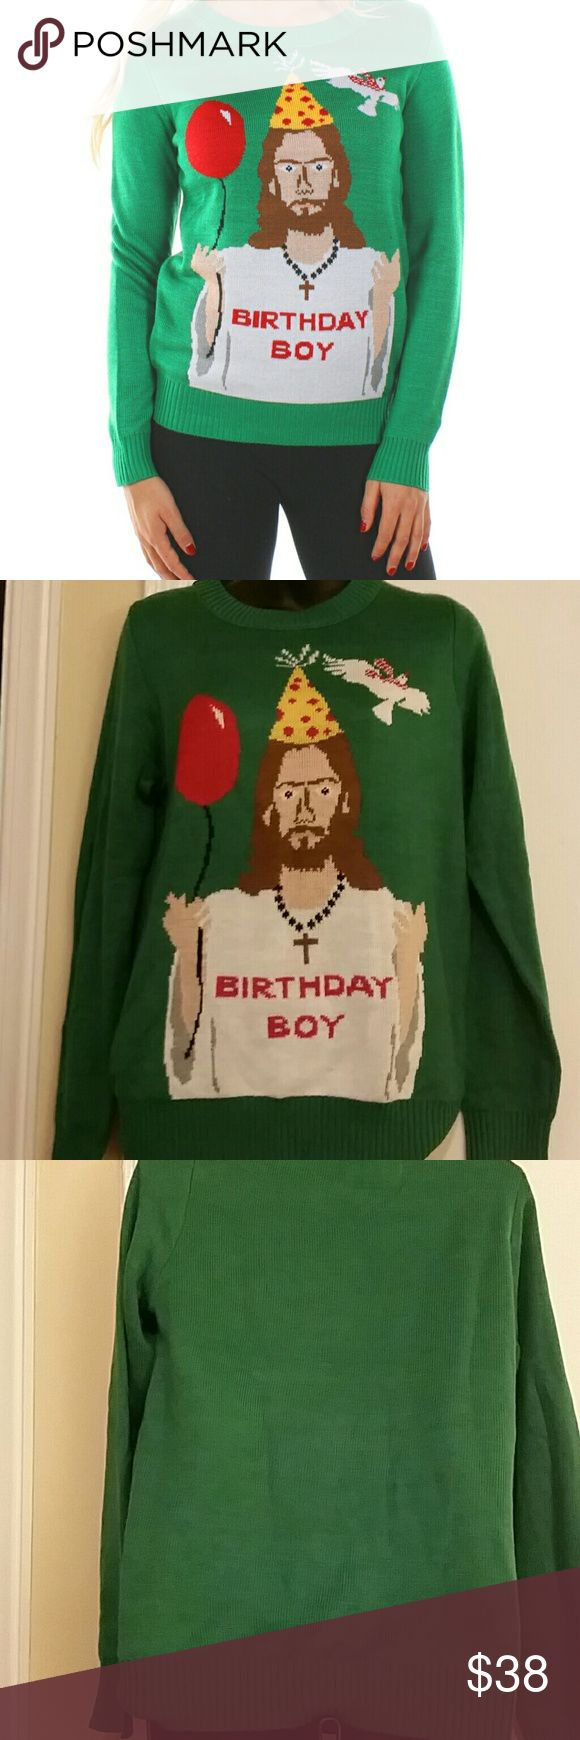 "TIPSY ELVES sweater A Tipsy Elves "" Birthday Boy "" sweater. tipsy elves  Sweaters Crew & Scoop Necks"